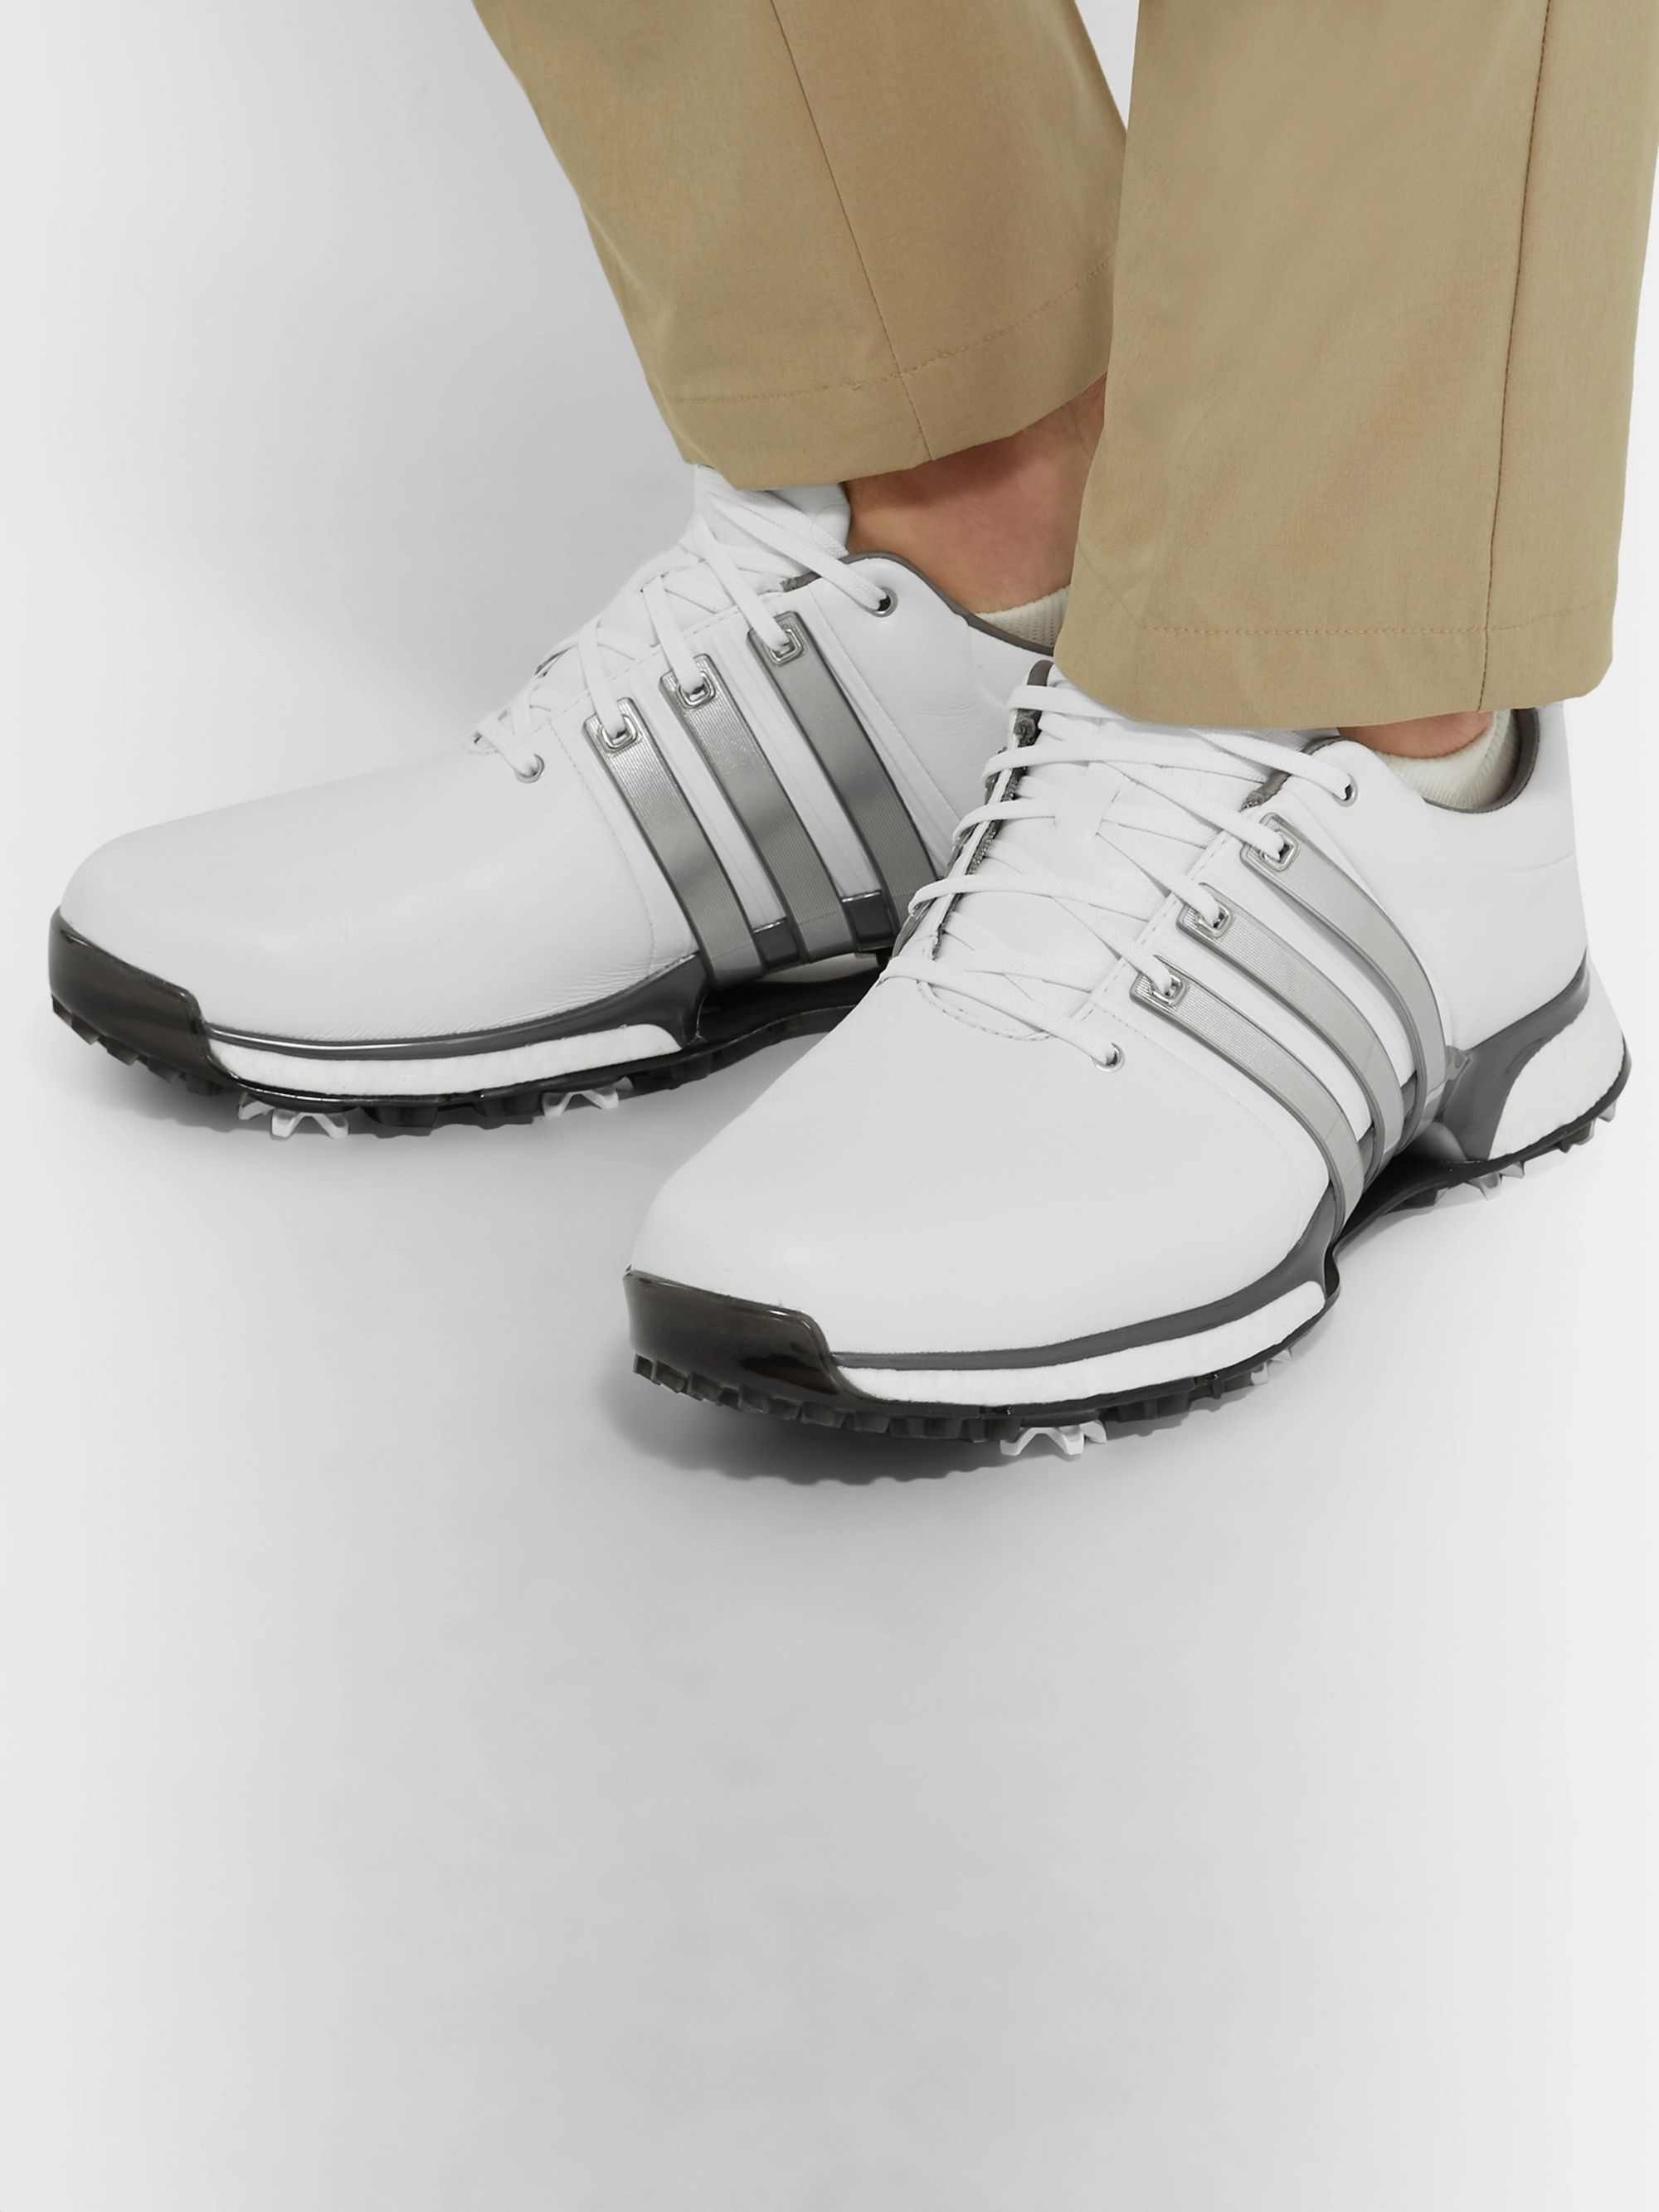 Adidas Golf Tour360 XT Leather Golf Shoes